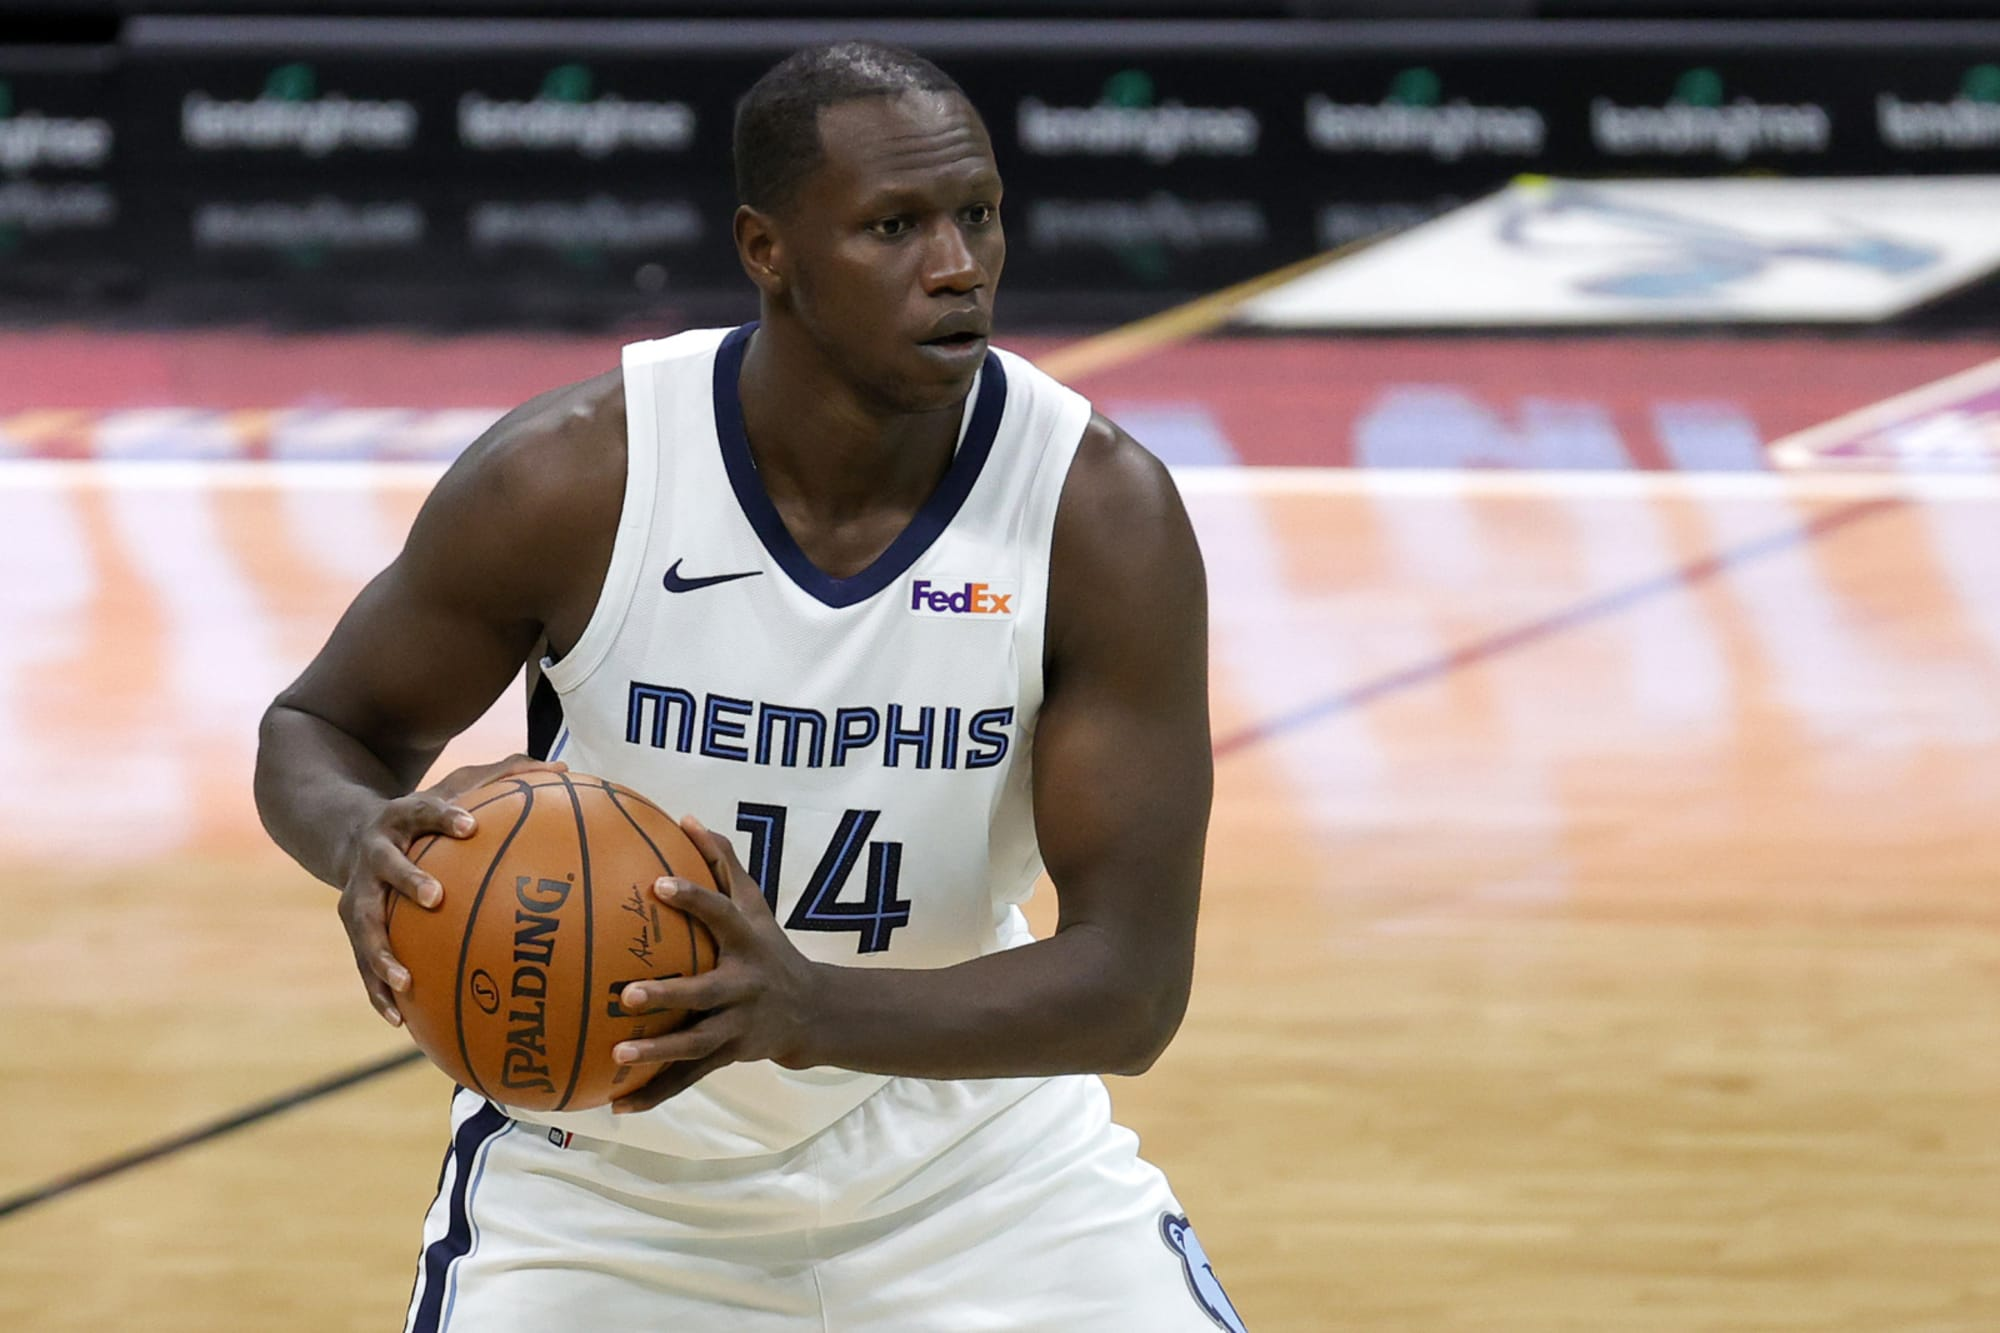 Toronto Raptors: Masai Ujiri connection could help Gorgui Dieng land with Raptors over Knicks